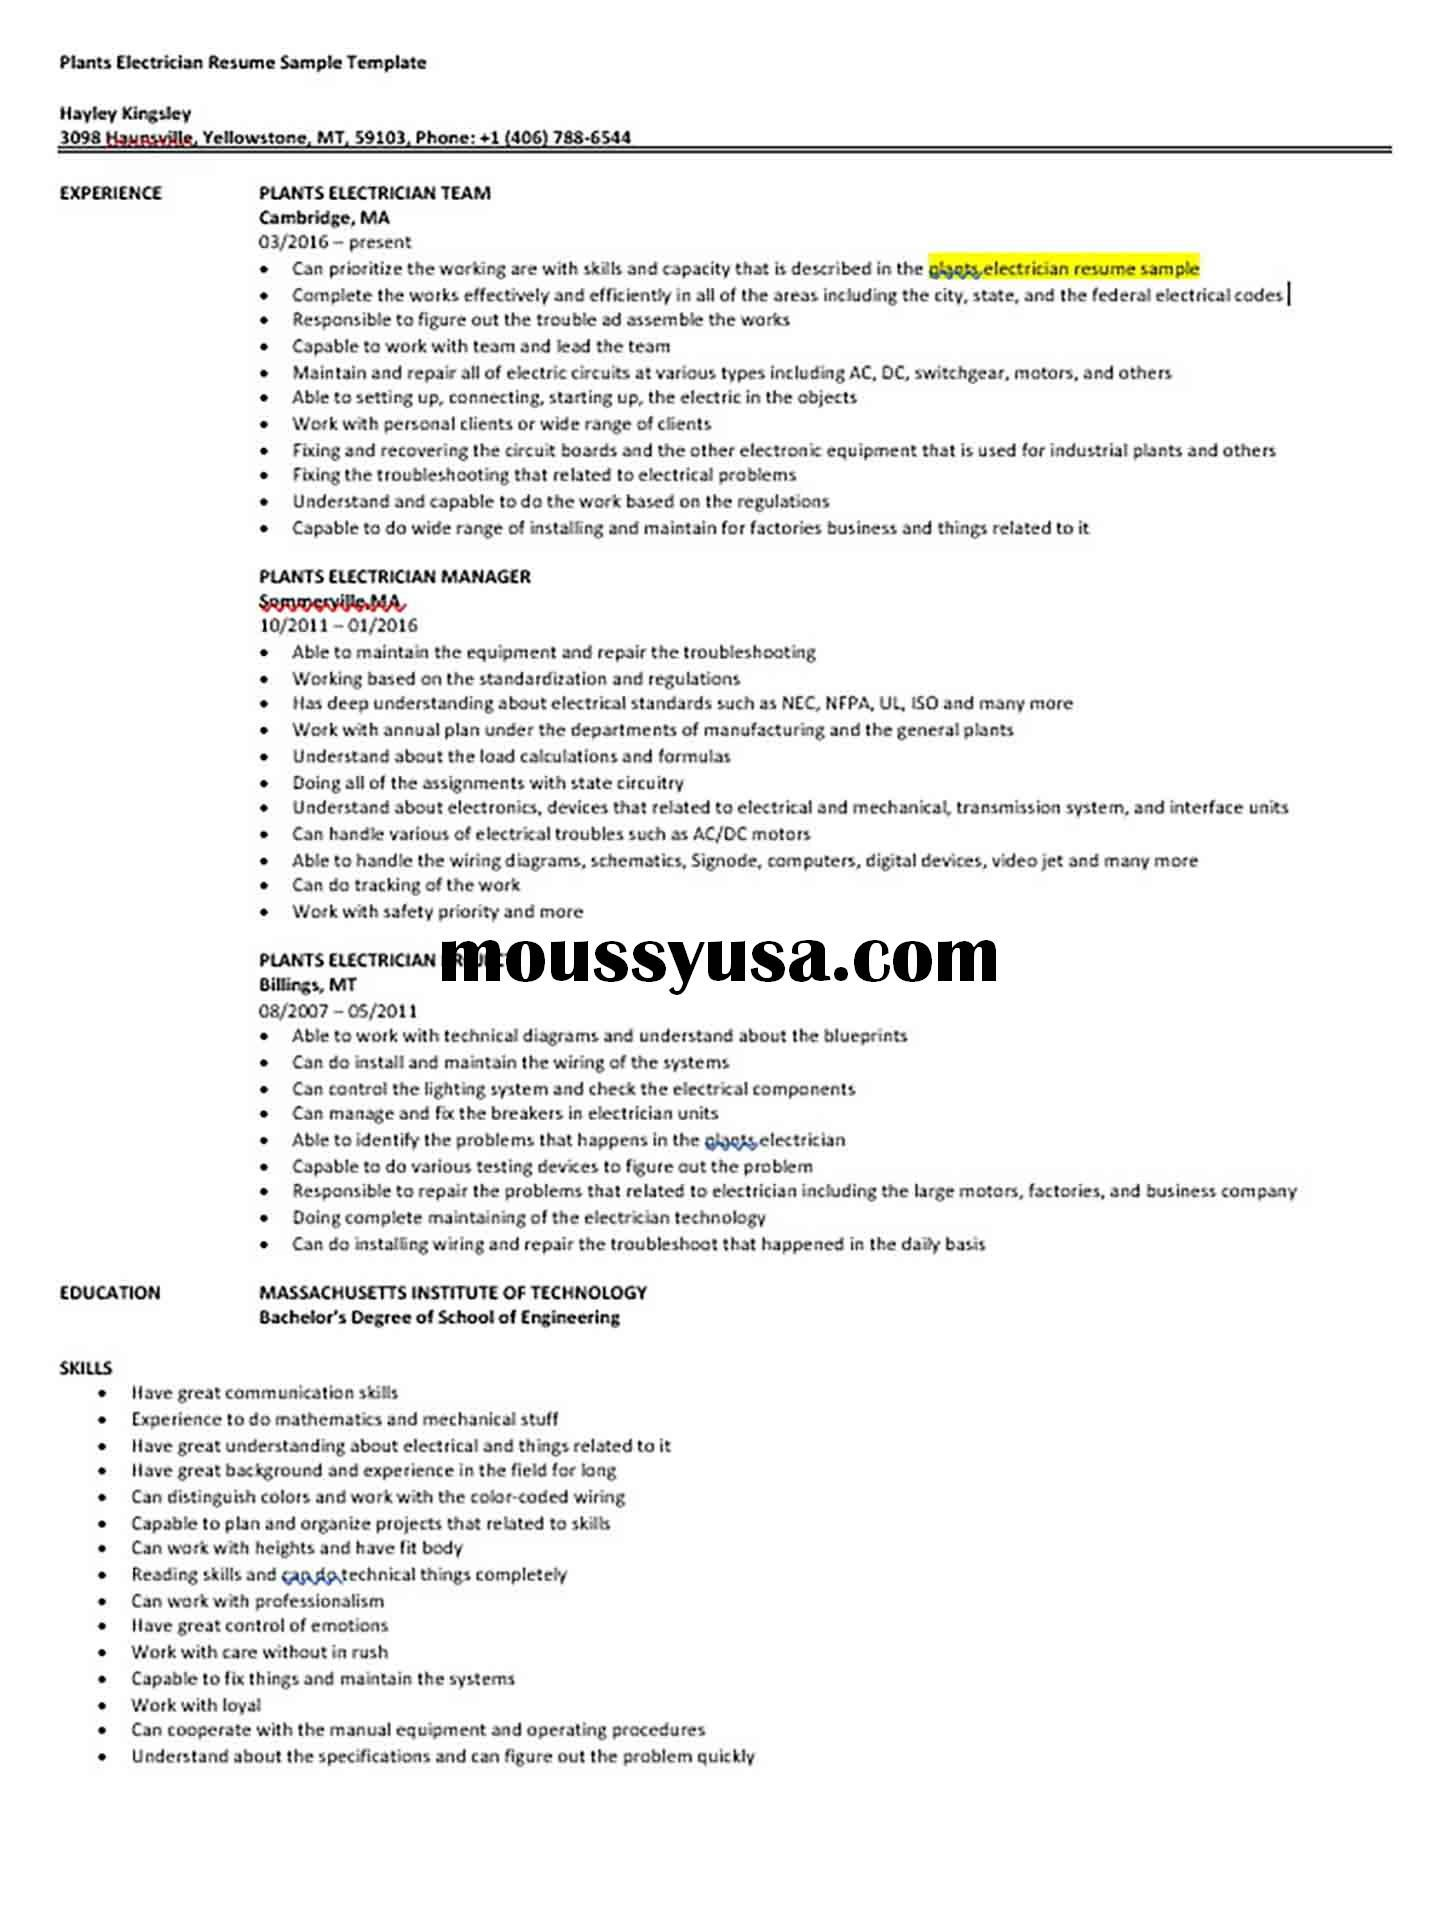 Plants Electrician Resume Sample Template Electrician Resume Business Template